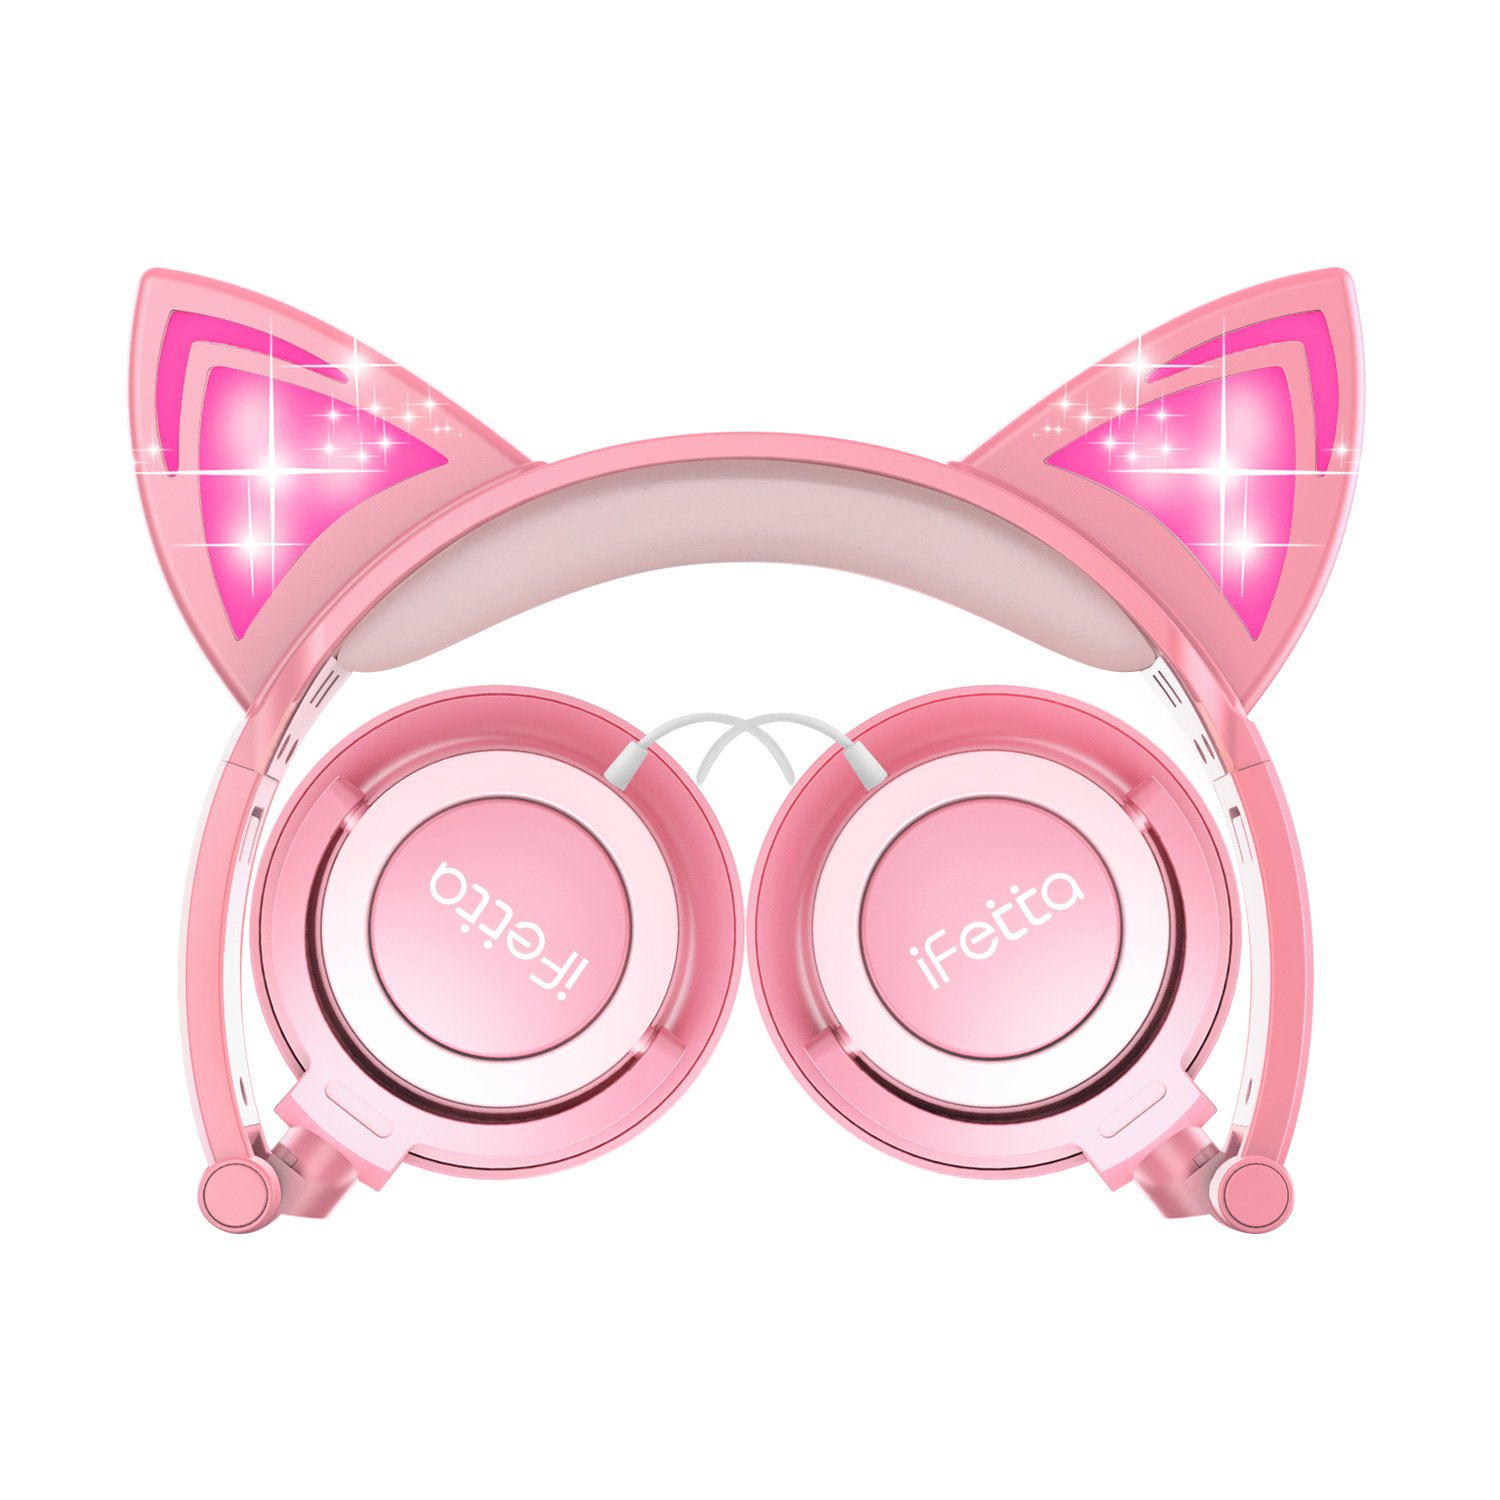 Kids Headphones, Ifecco Cat Ear Headphones Light Glowing Over Ear Headset Pink for Girls with 3.5mm Audio Cable